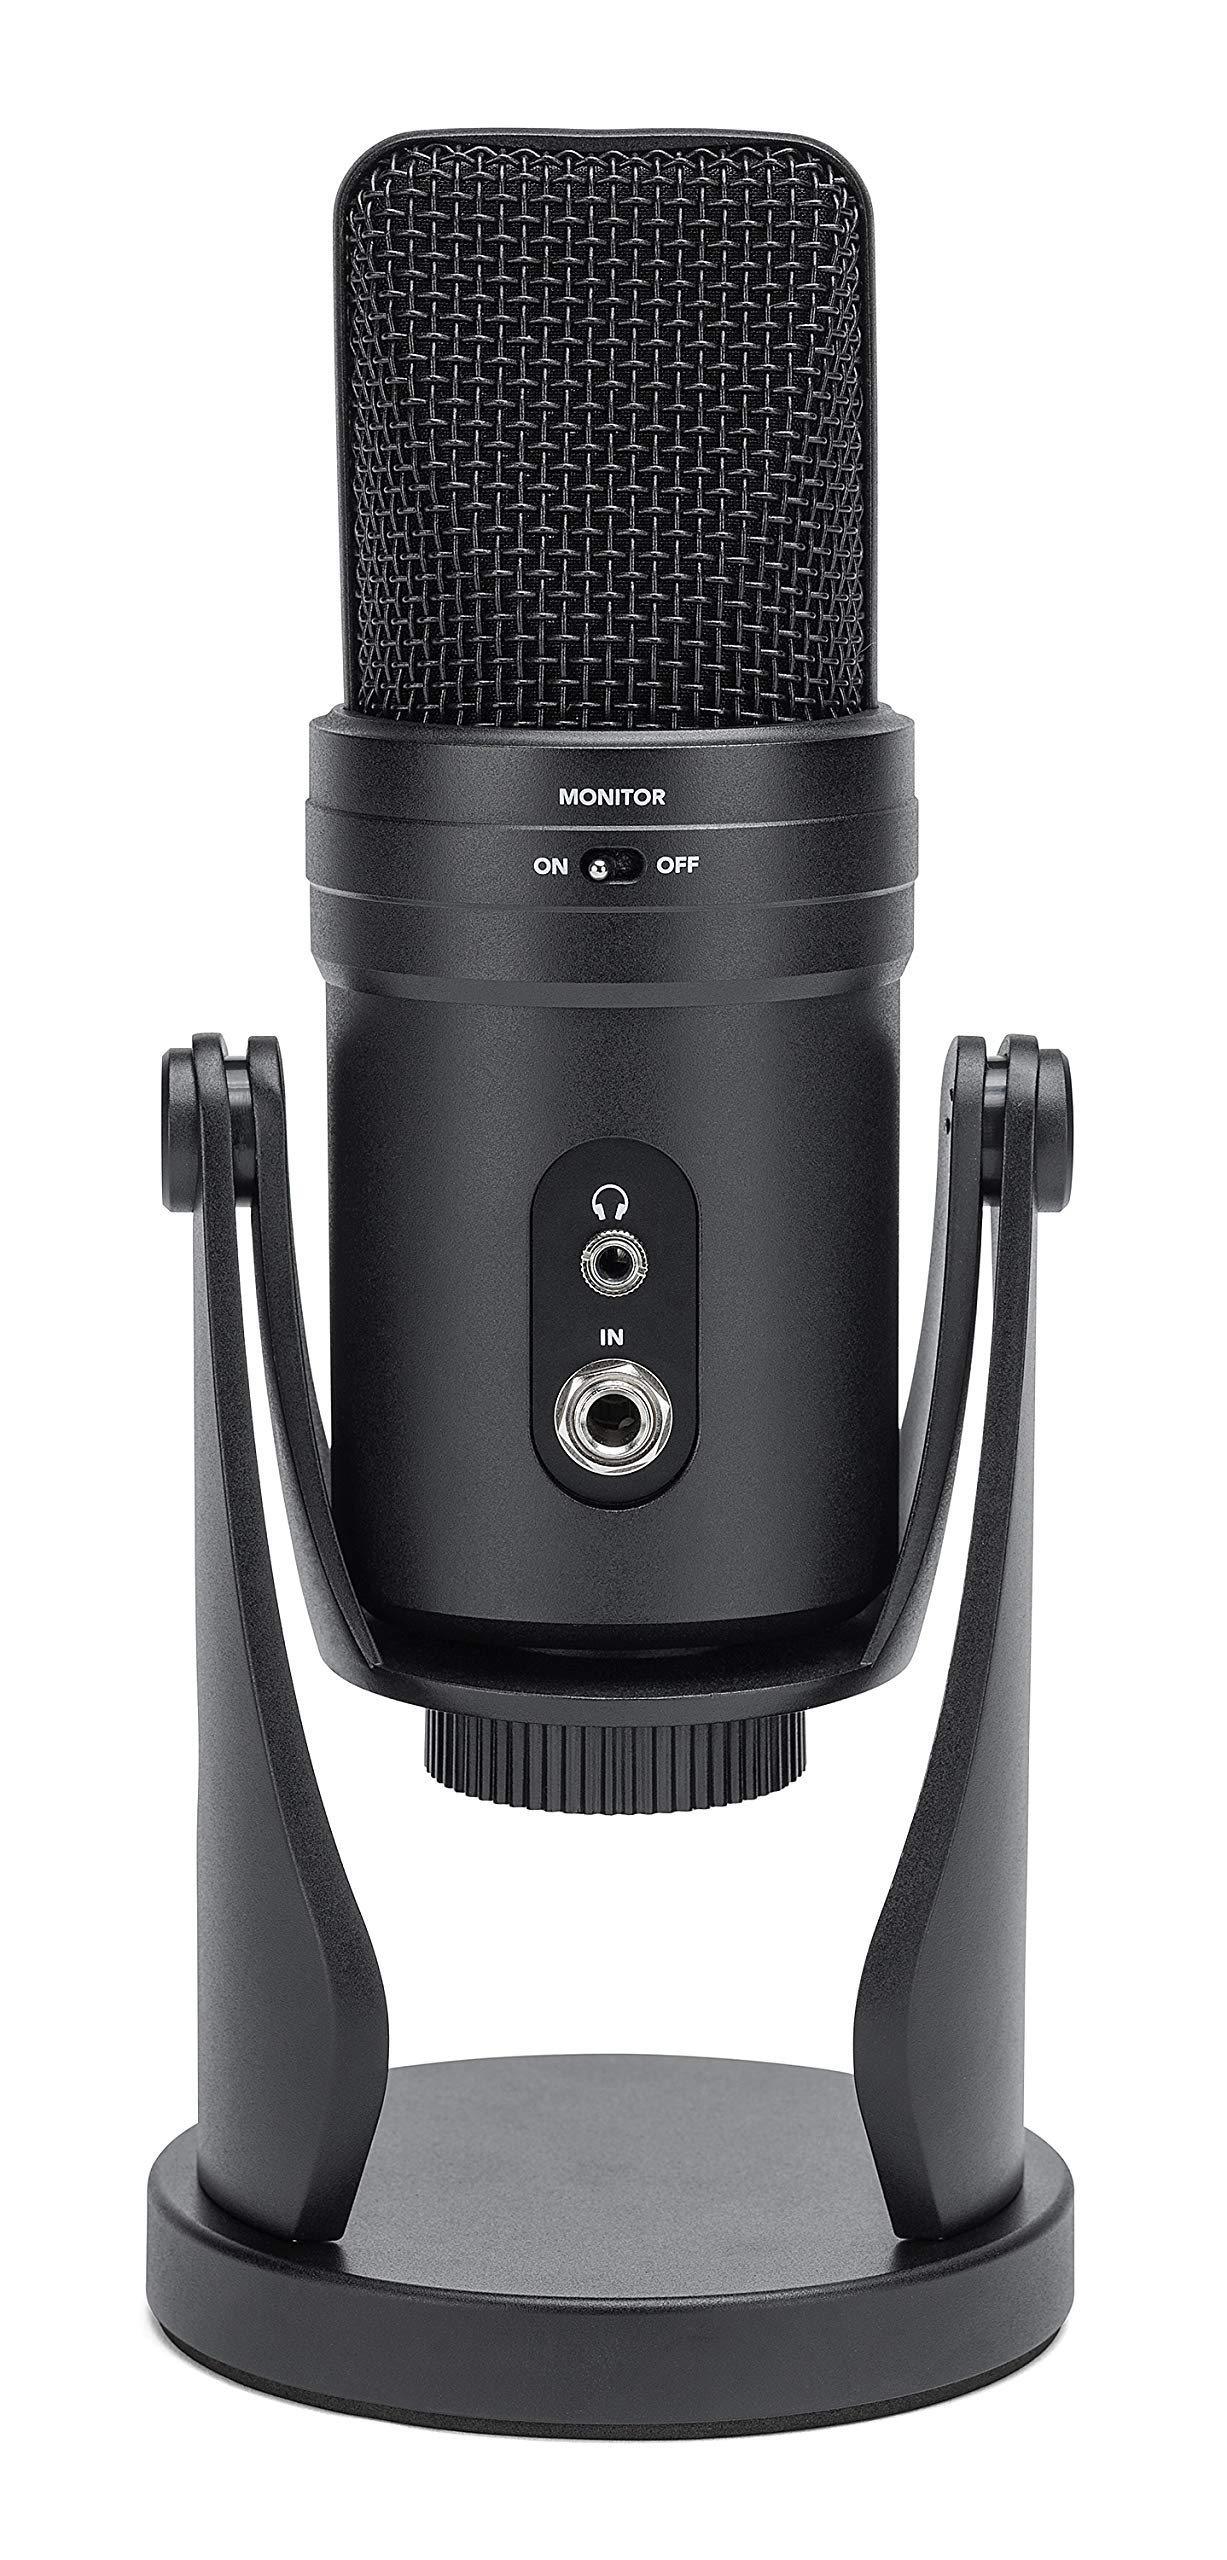 Samson G-Track Pro USB Condenser Microphone for Voiceovers, Podcasting, Vocal and Instrument Recording Bundle with Blucoil 3-FT USB 2.0 Type-A Extension Cable, and Boom Arm Plus Pop Filter